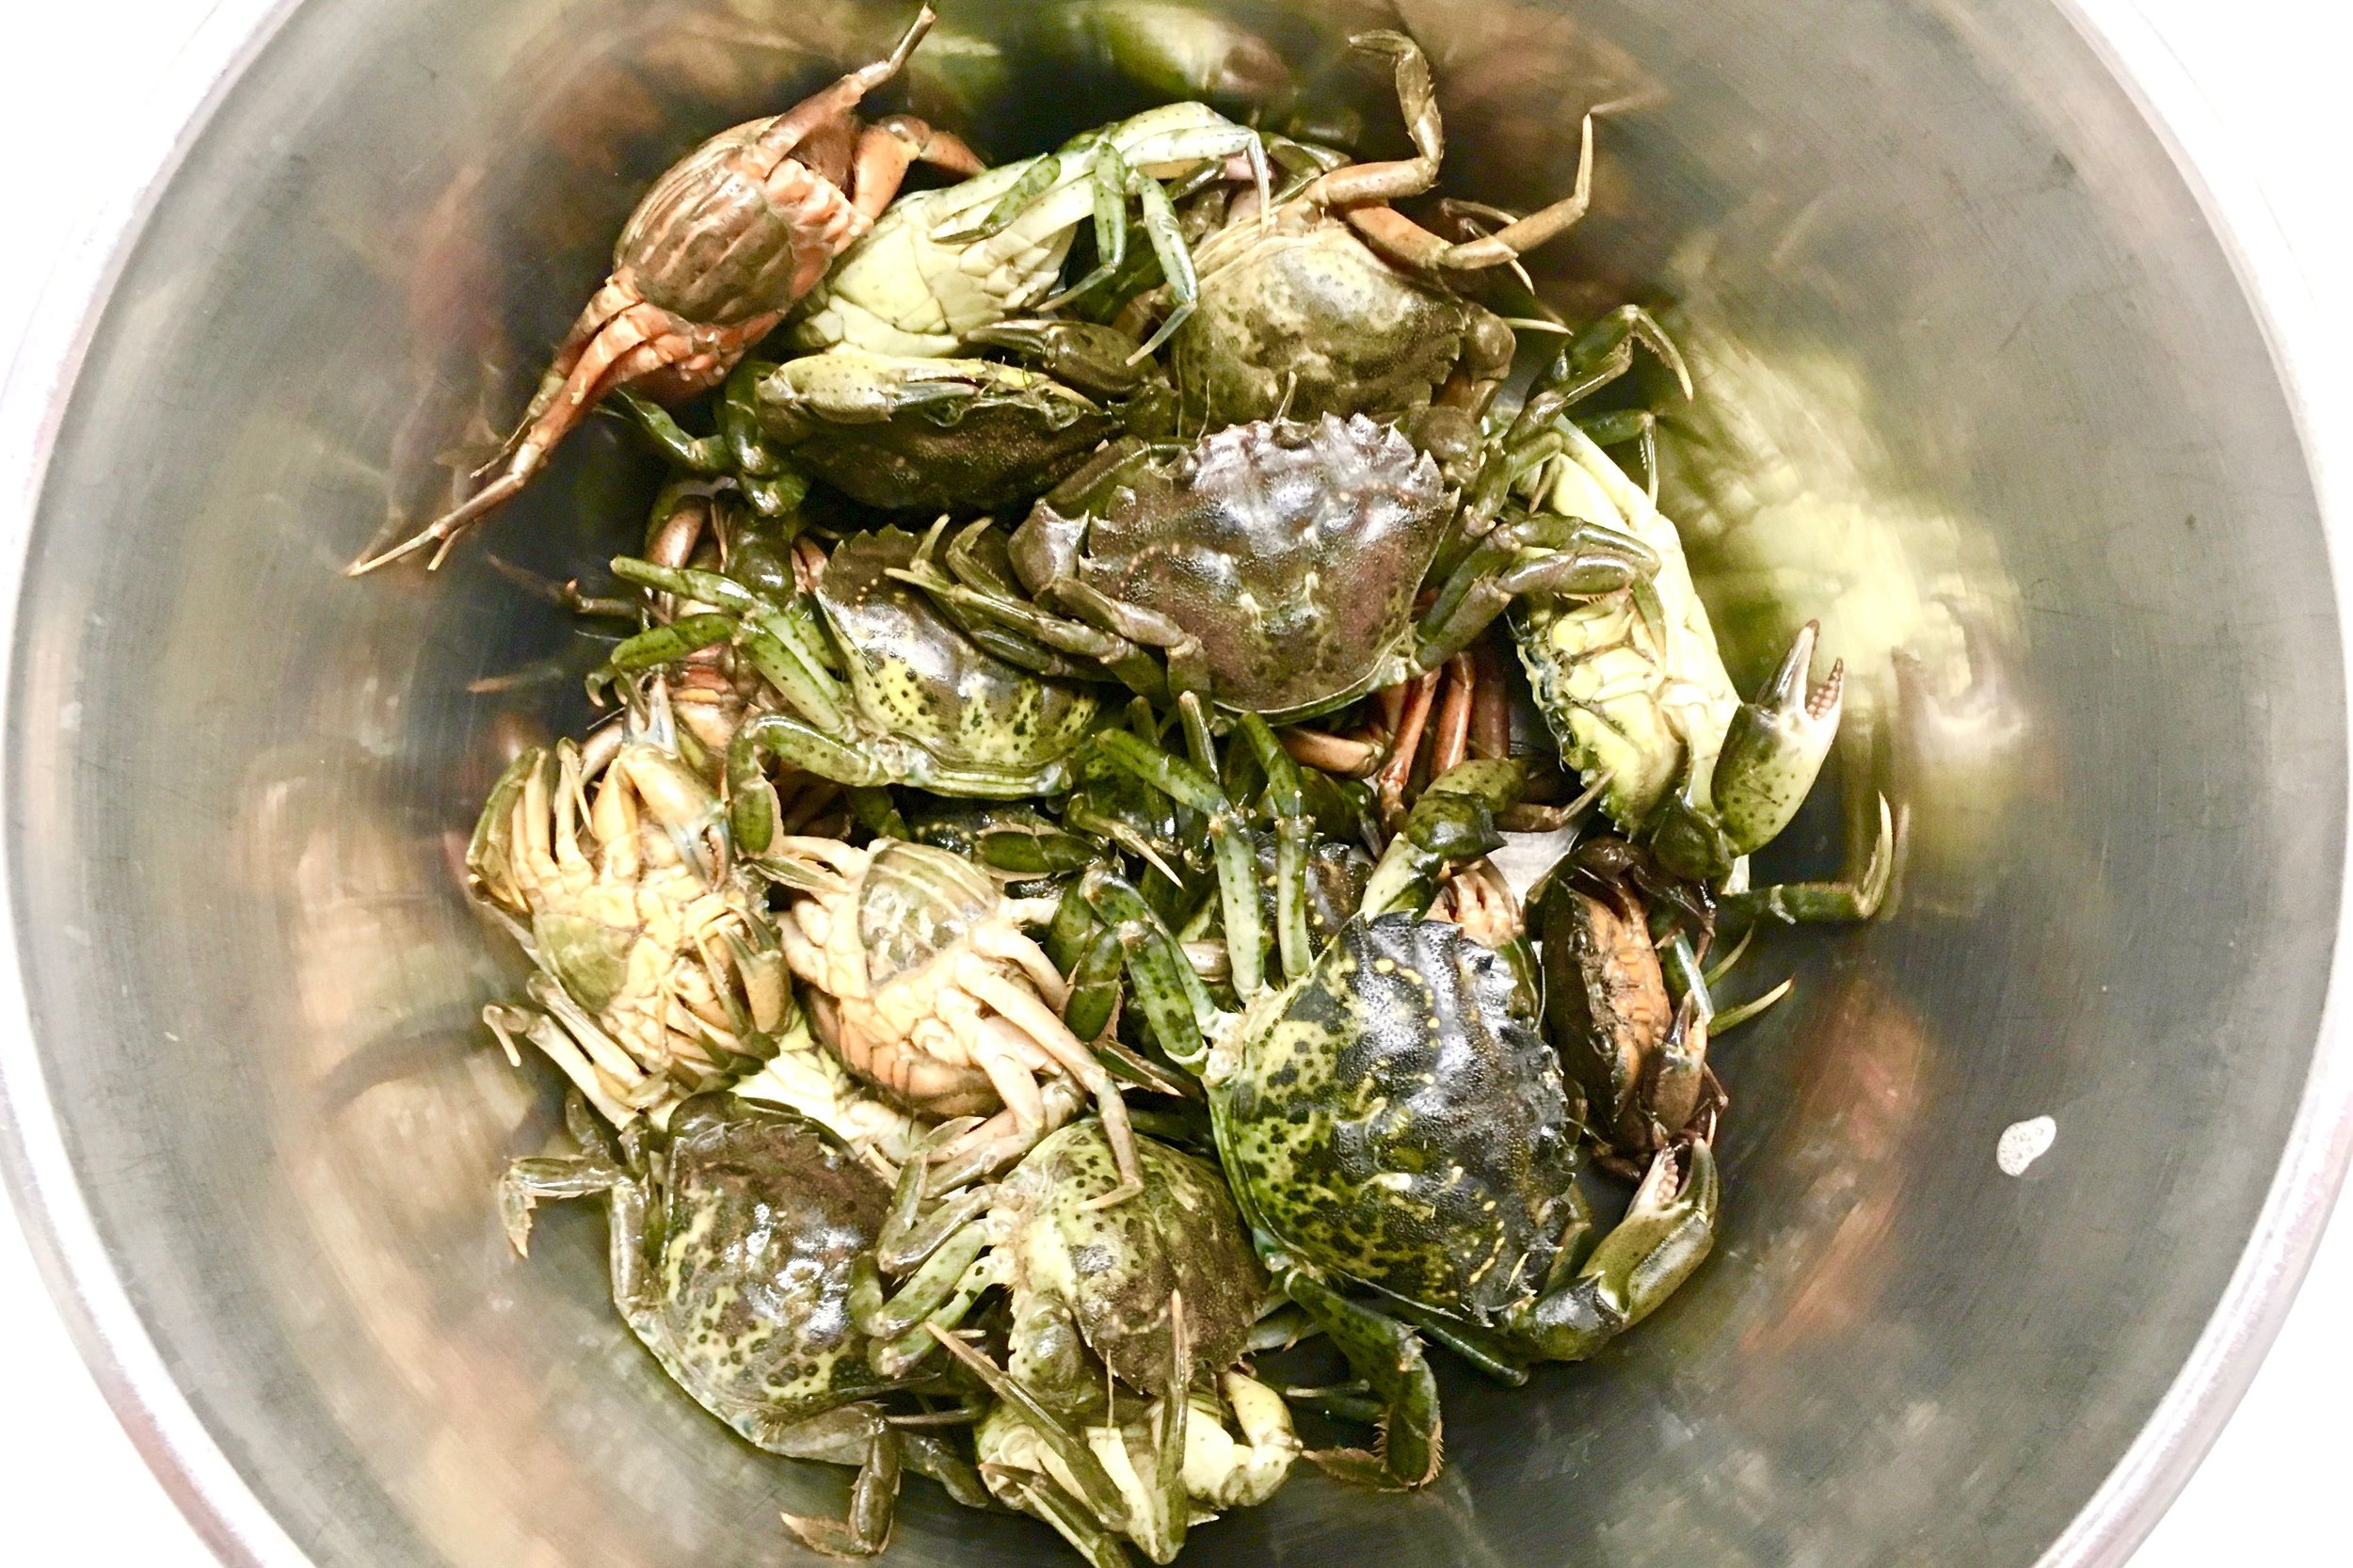 Shore crabs clinking in a can